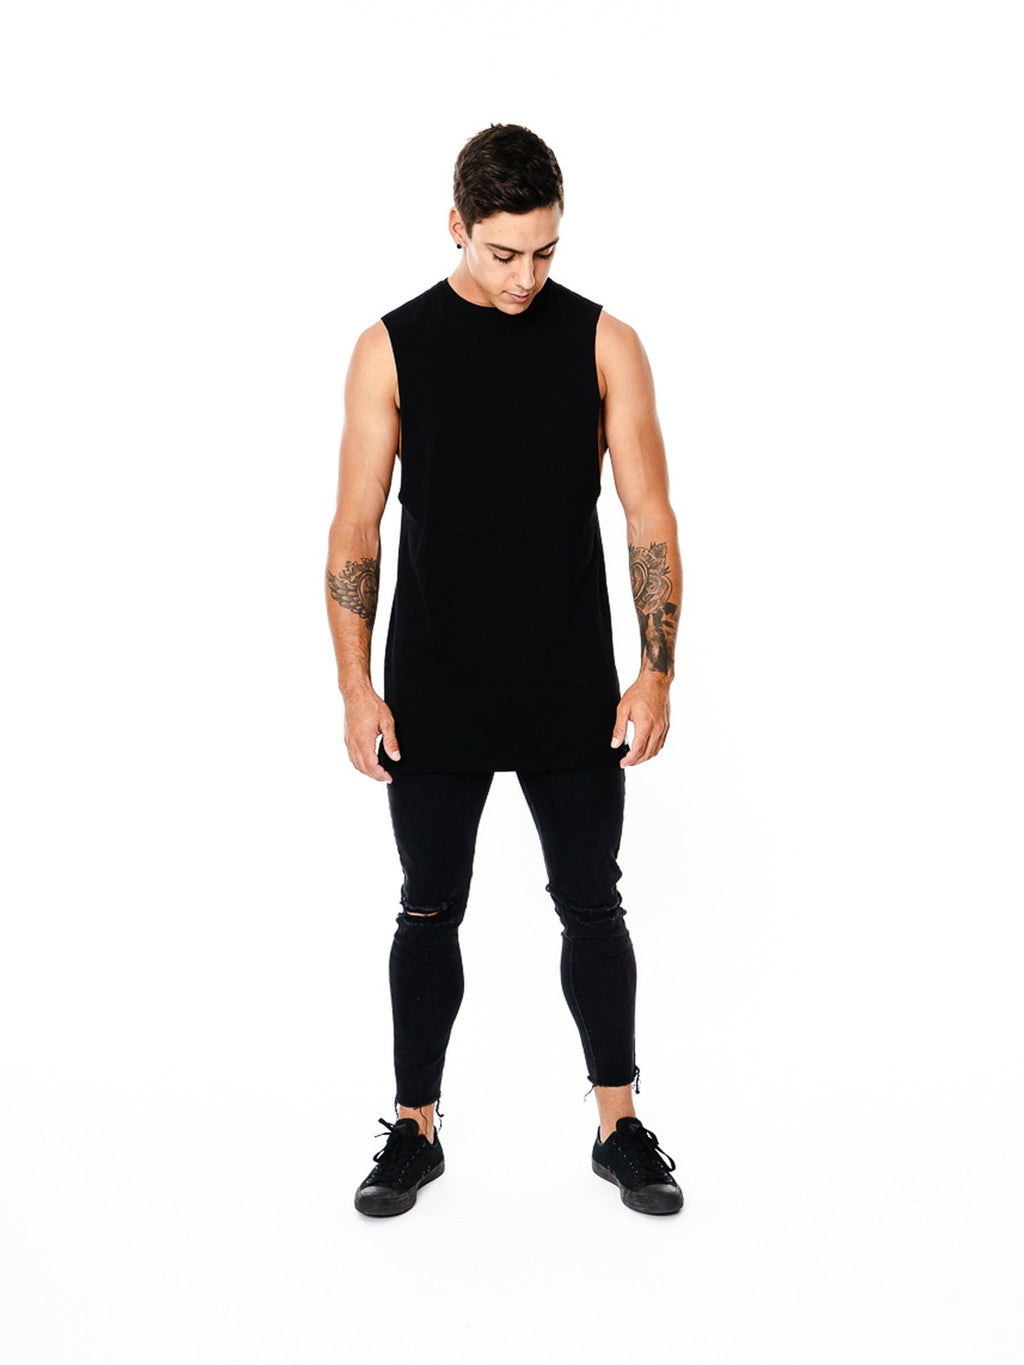 BASIX PLAIN CUT OFF TEE (BLACK) MANASSE COLLECTION Imperial Clothing